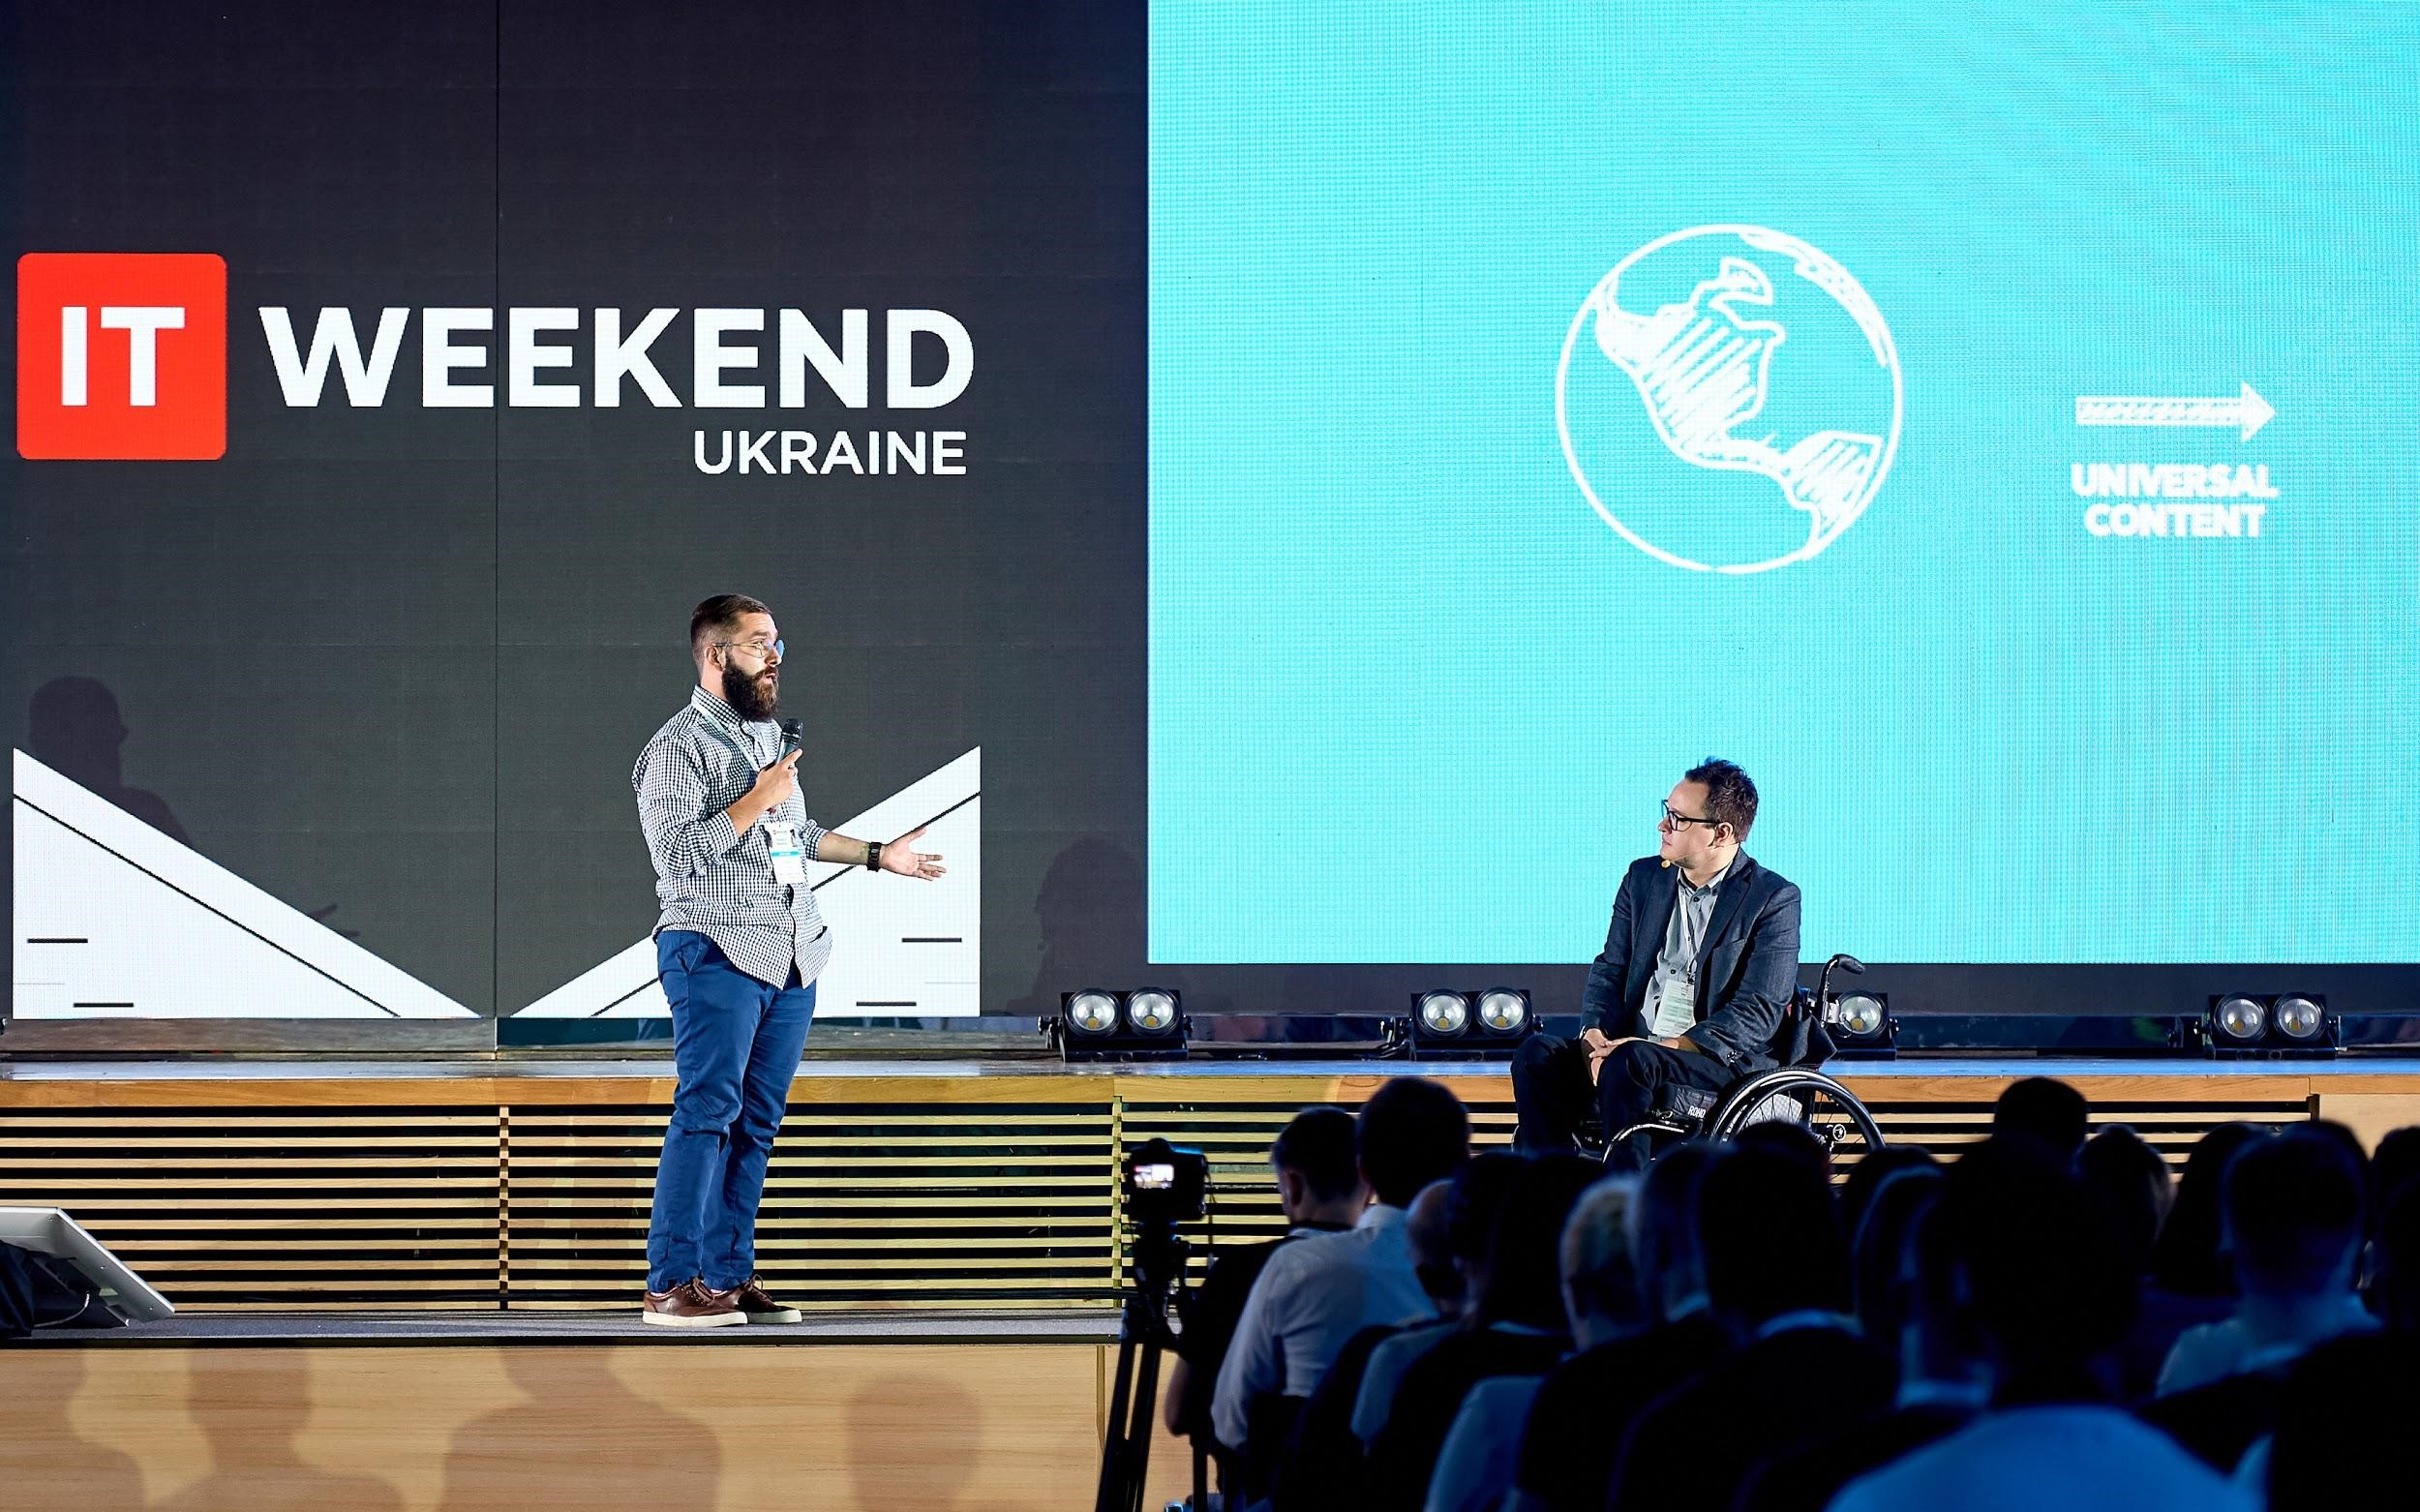 3 IT Weekend Ukraine 2017: the Future of Robots and Machines